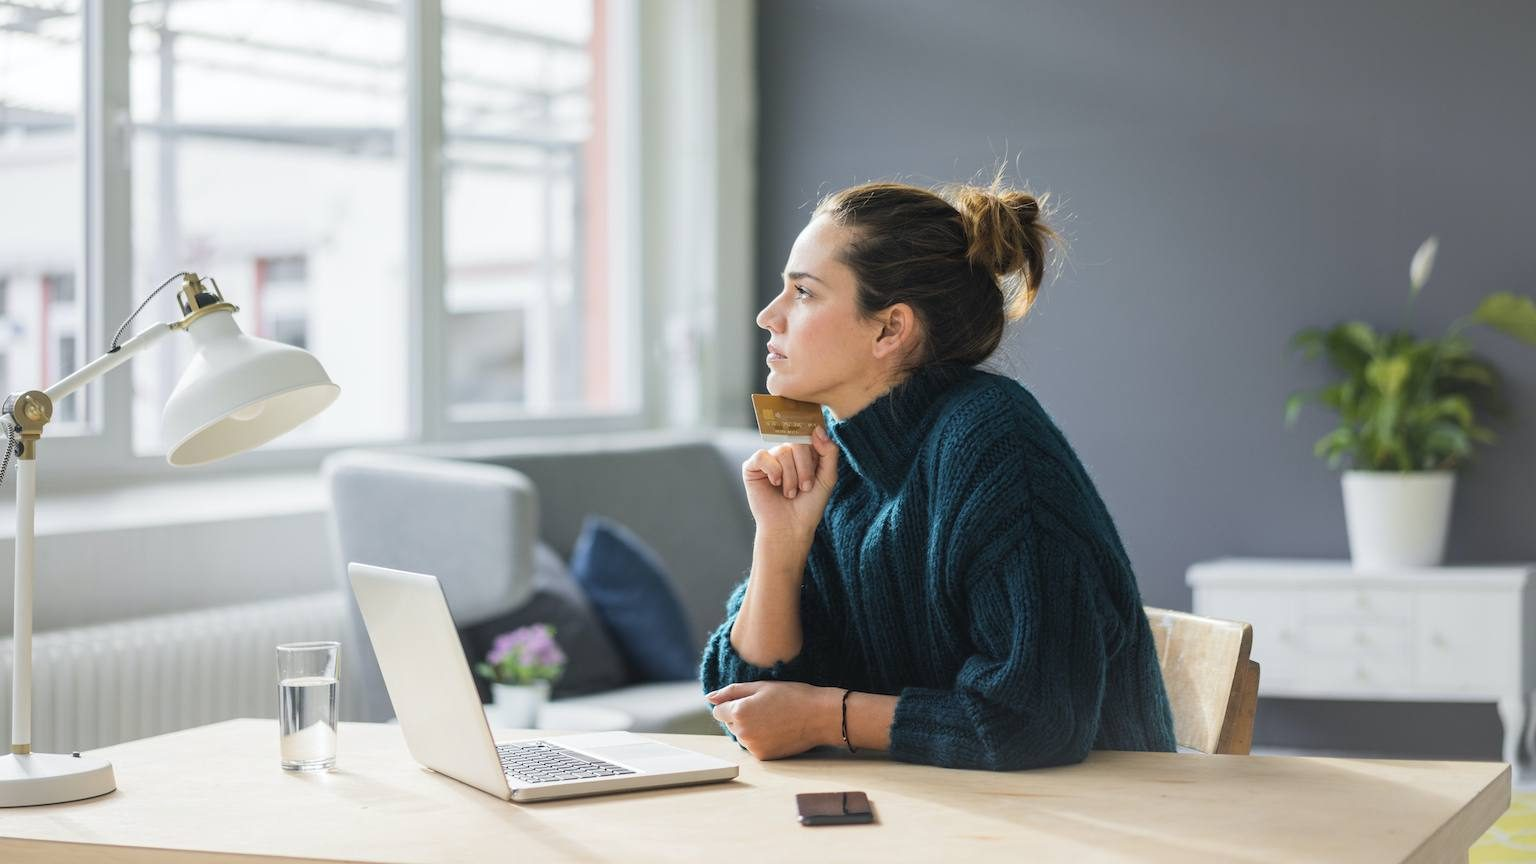 Lady sitting at desk with credit card in front of laptop.